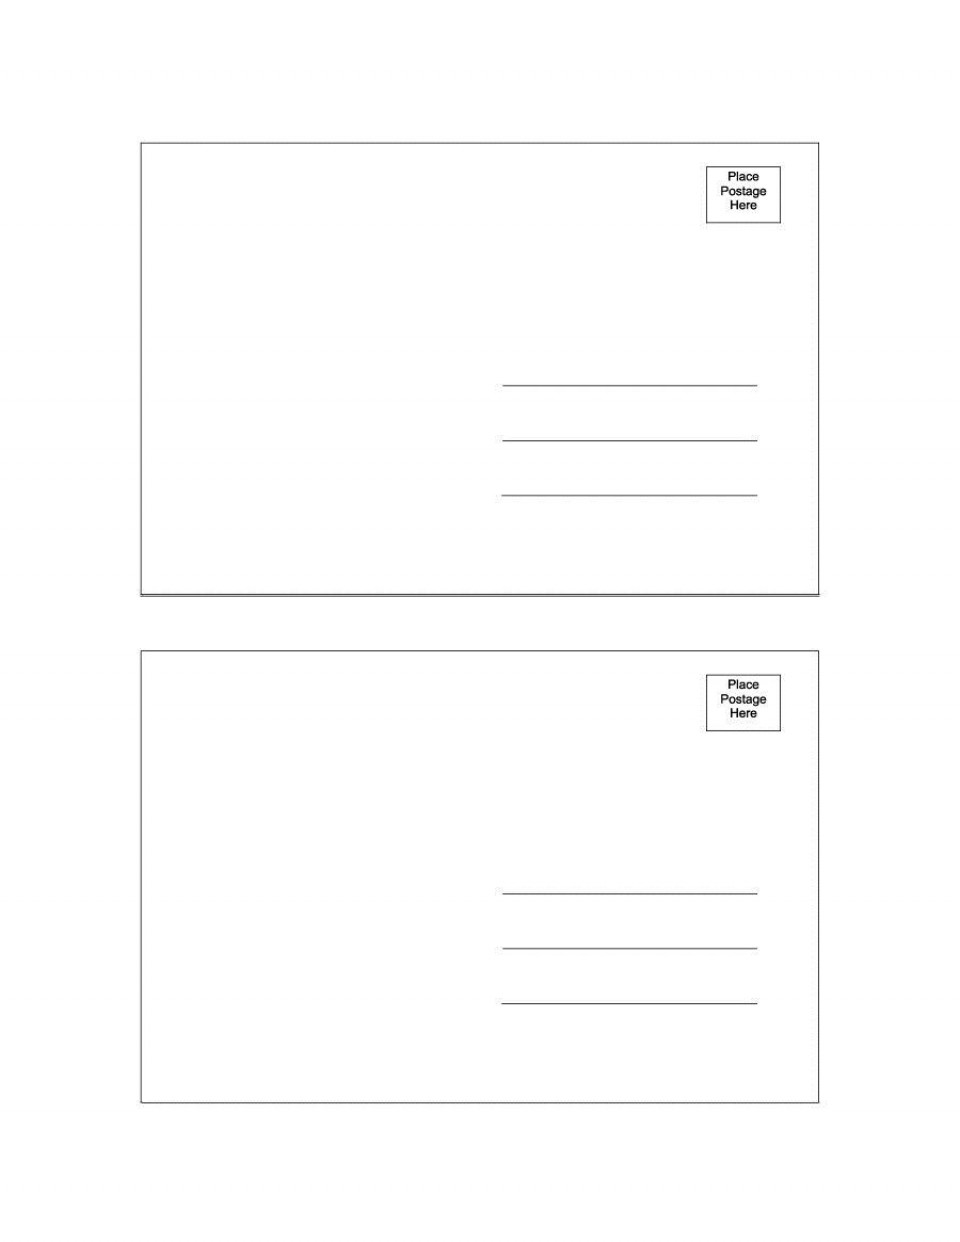 000 Amazing Postcard Layout For Microsoft Word Photo  Busines Template960